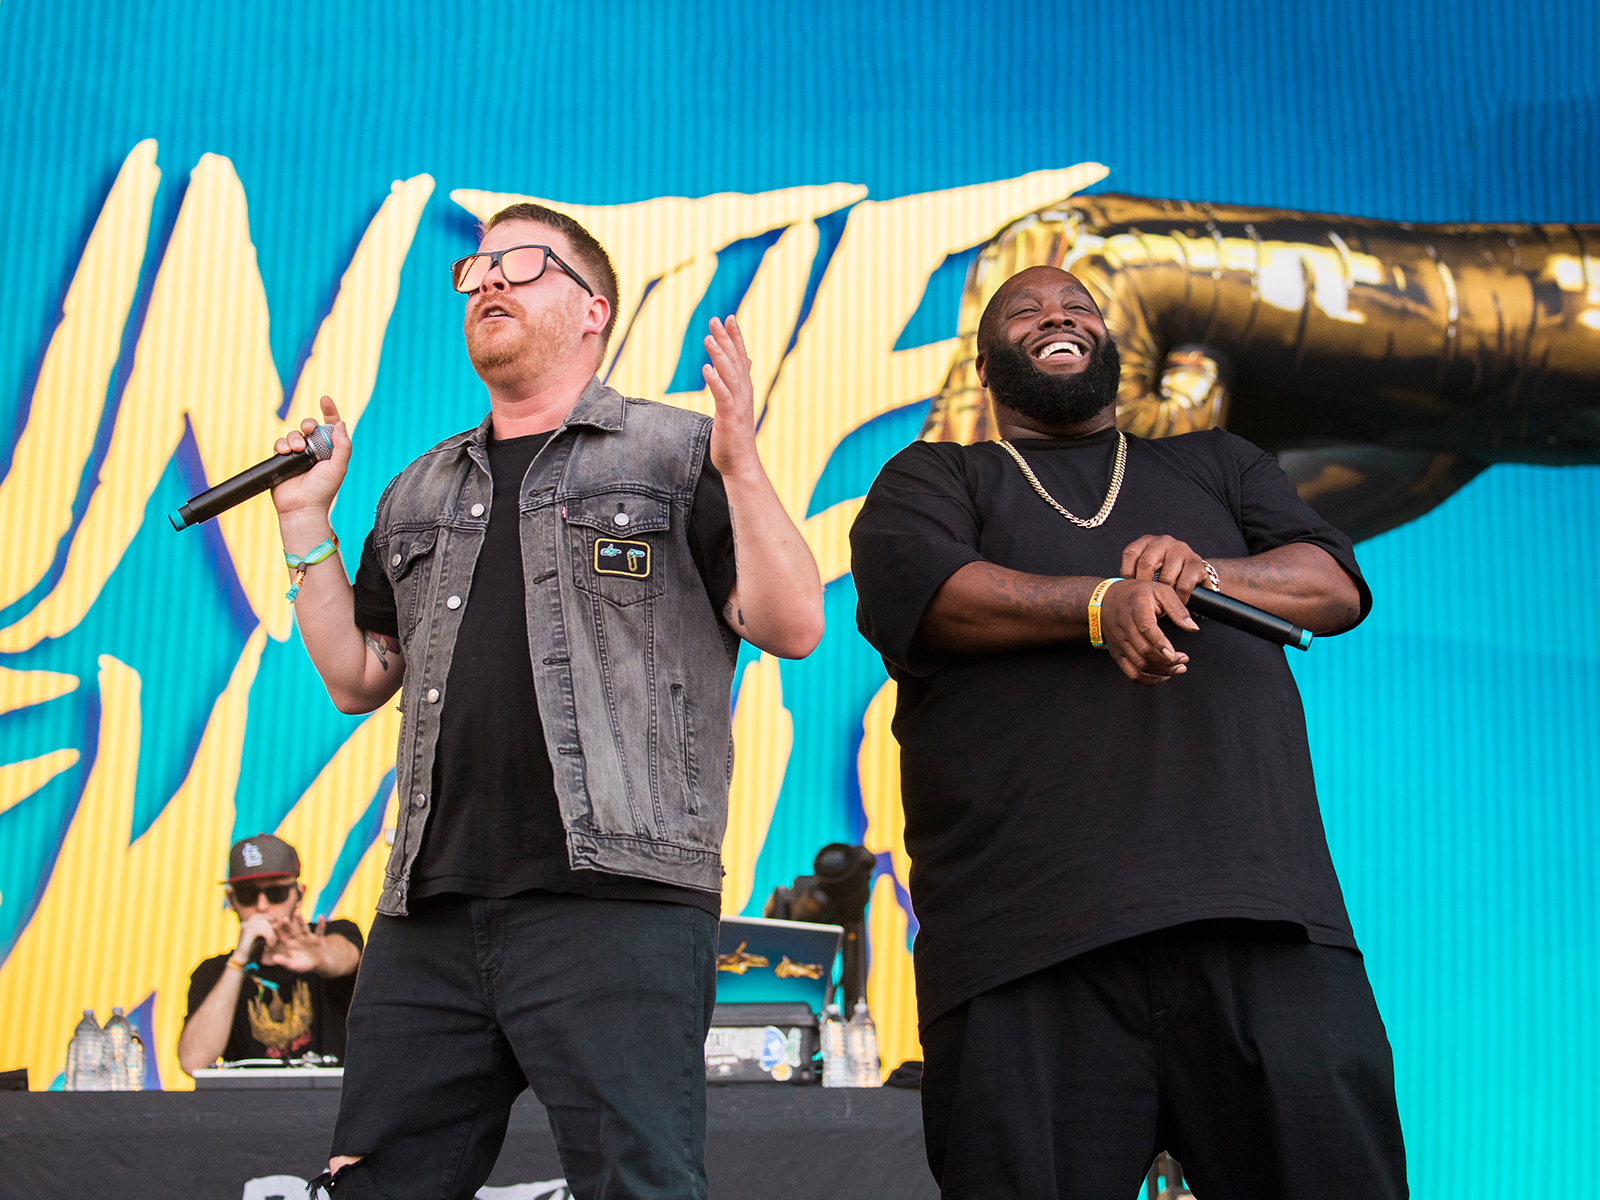 Run The Jewels Paired with 'Diners, Drive-Ins and Dives' Works Better Than You Might Expect